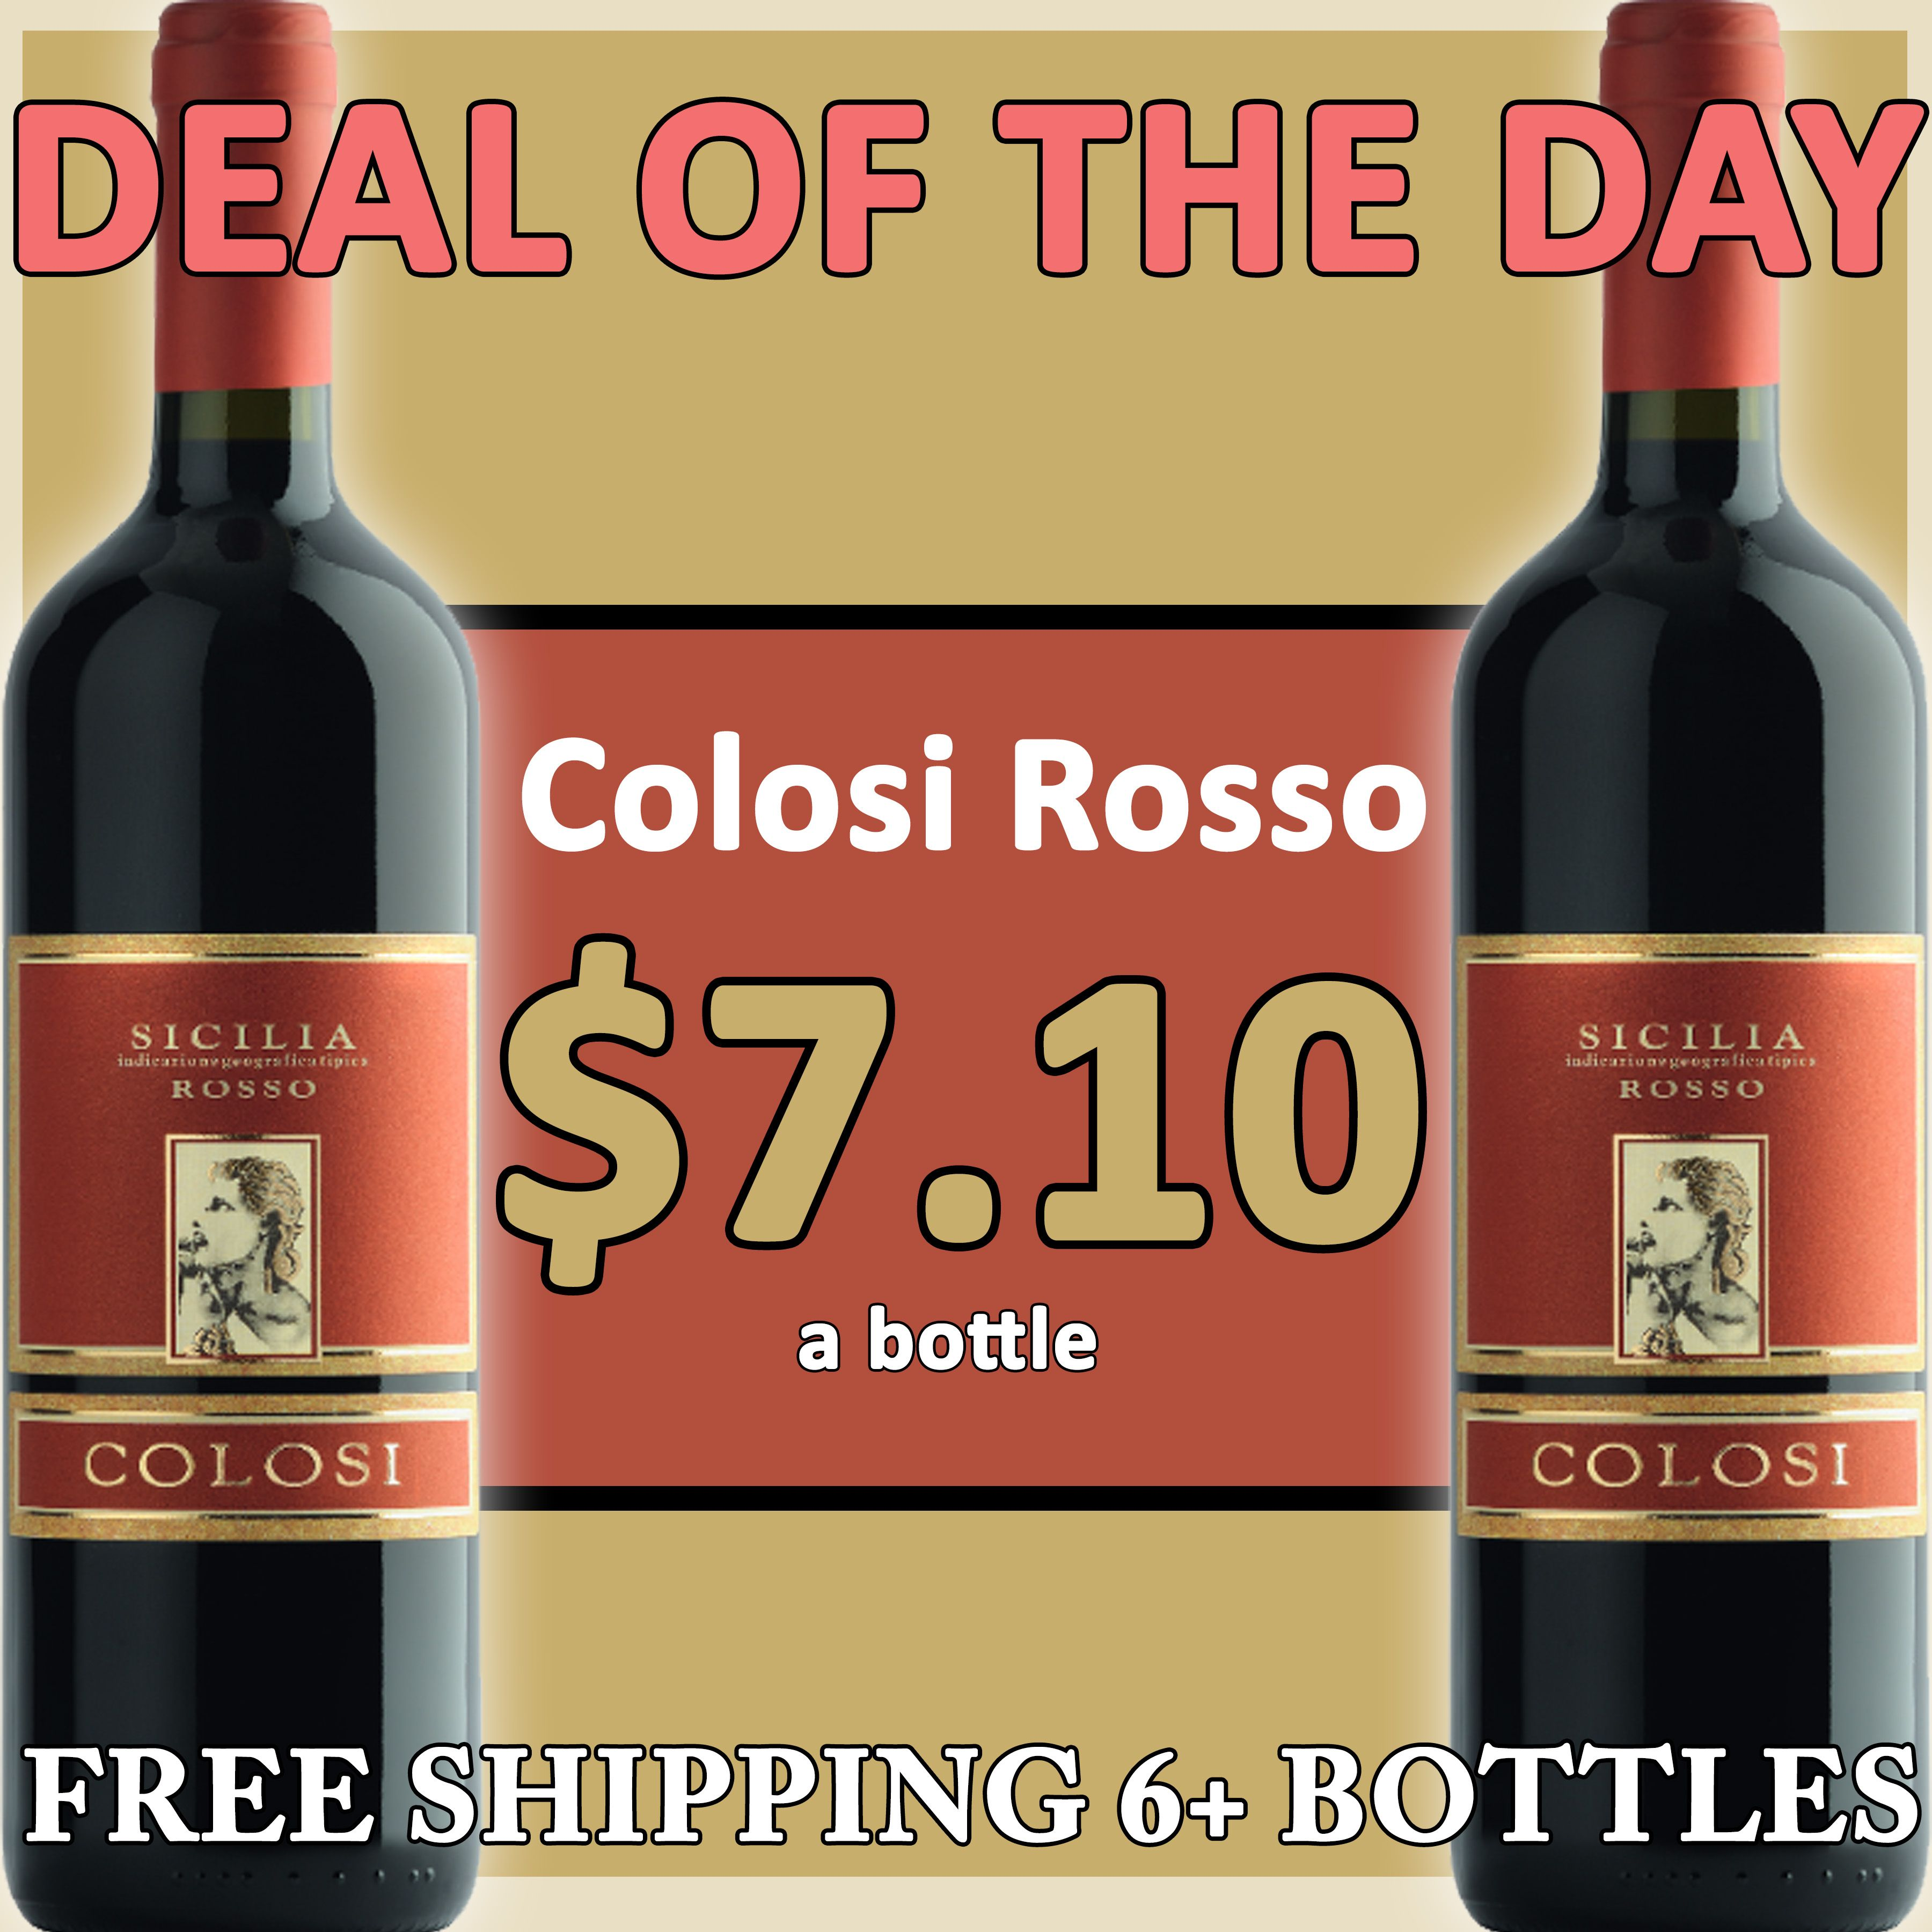 Colosi Rosso 7 10 A Bottle Free Shipping 6 Bottles 100 Nero D Avola From Sicily Italy The Color Is An Intense Dark Ruby Full Bodied Wine Bottle Aroma